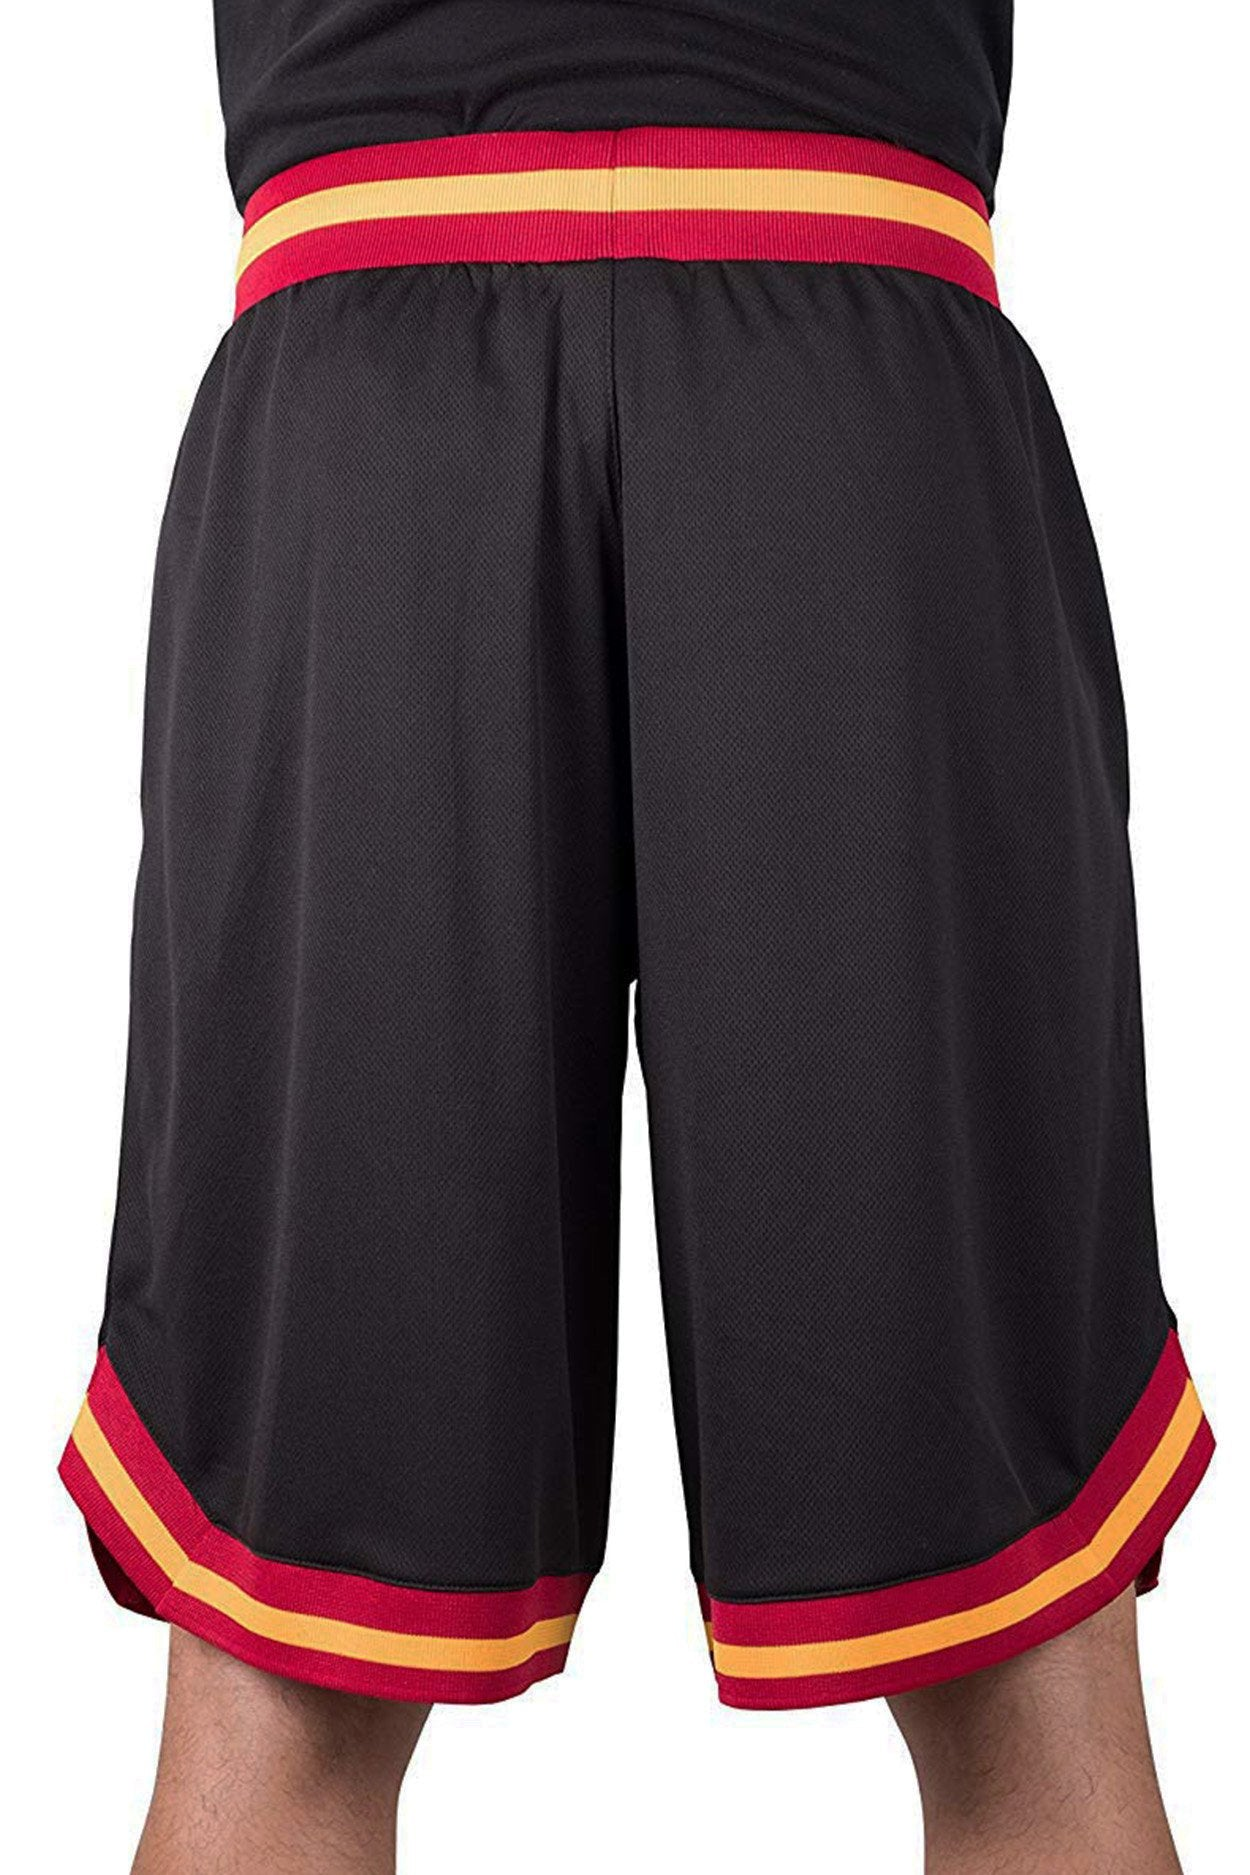 NBA Cleveland Cavaliers Men's Basketball Shorts|Cleveland Cavaliers